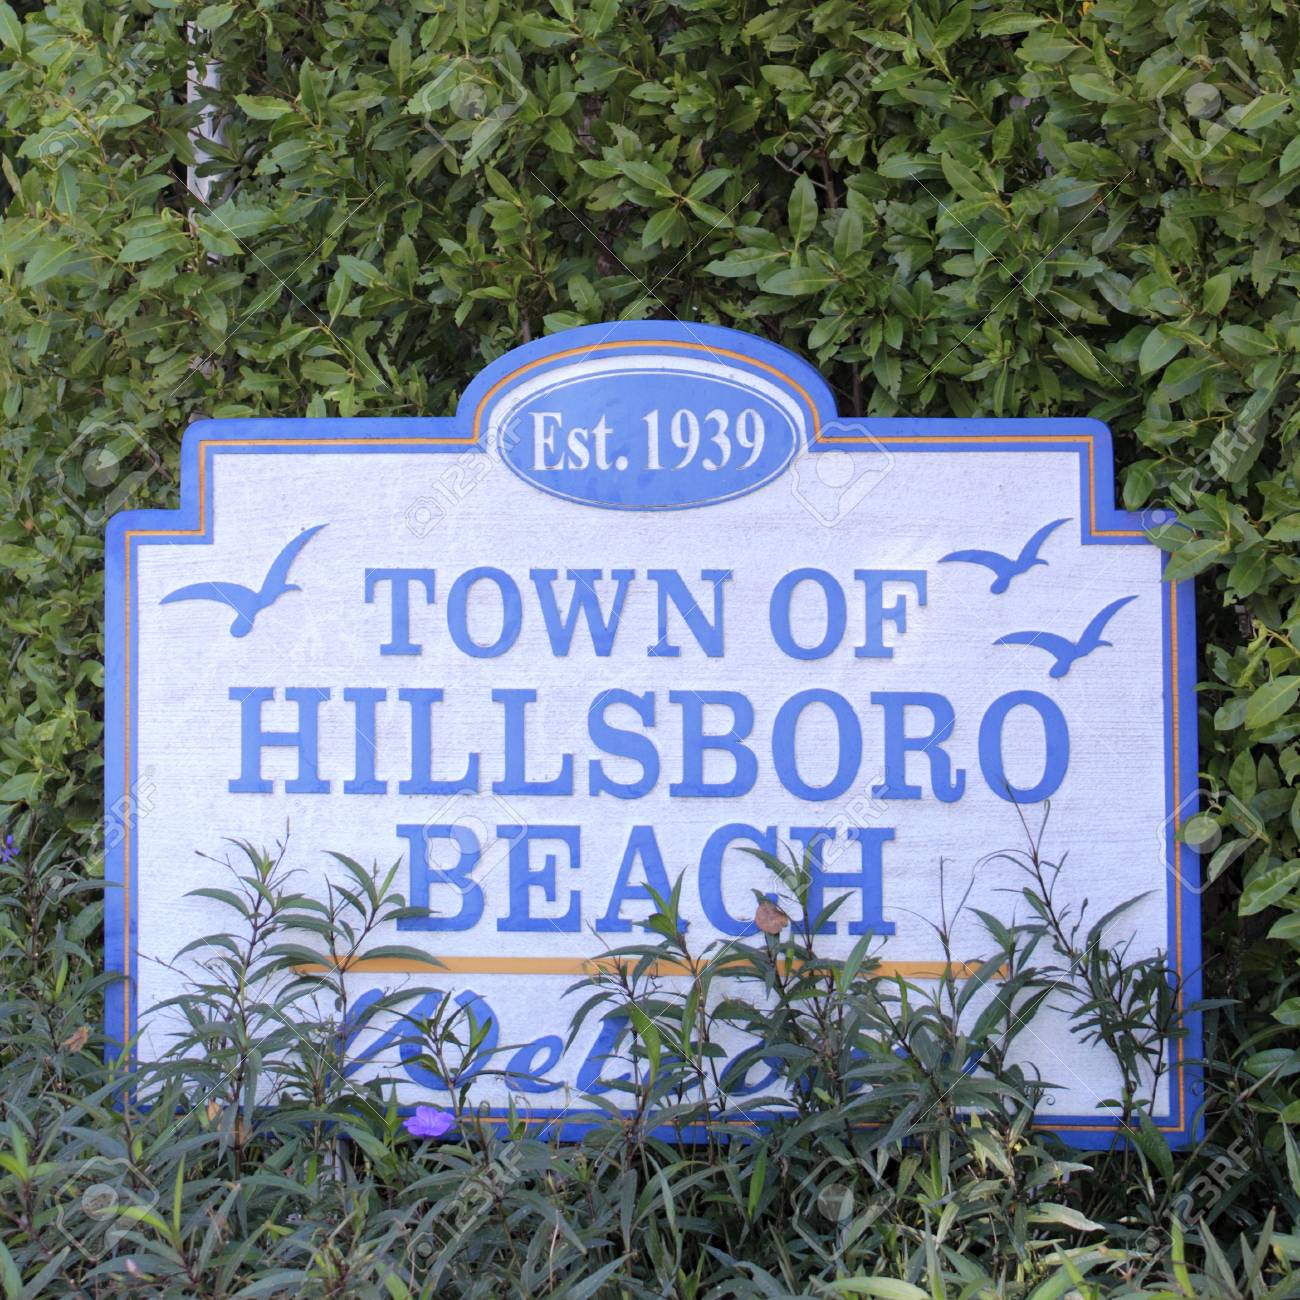 55124277-hillsboro-beach-fl-usa-february-12-2014-established-1939-town-of-hillsboro-beach-decorated-sign-welc.jpg